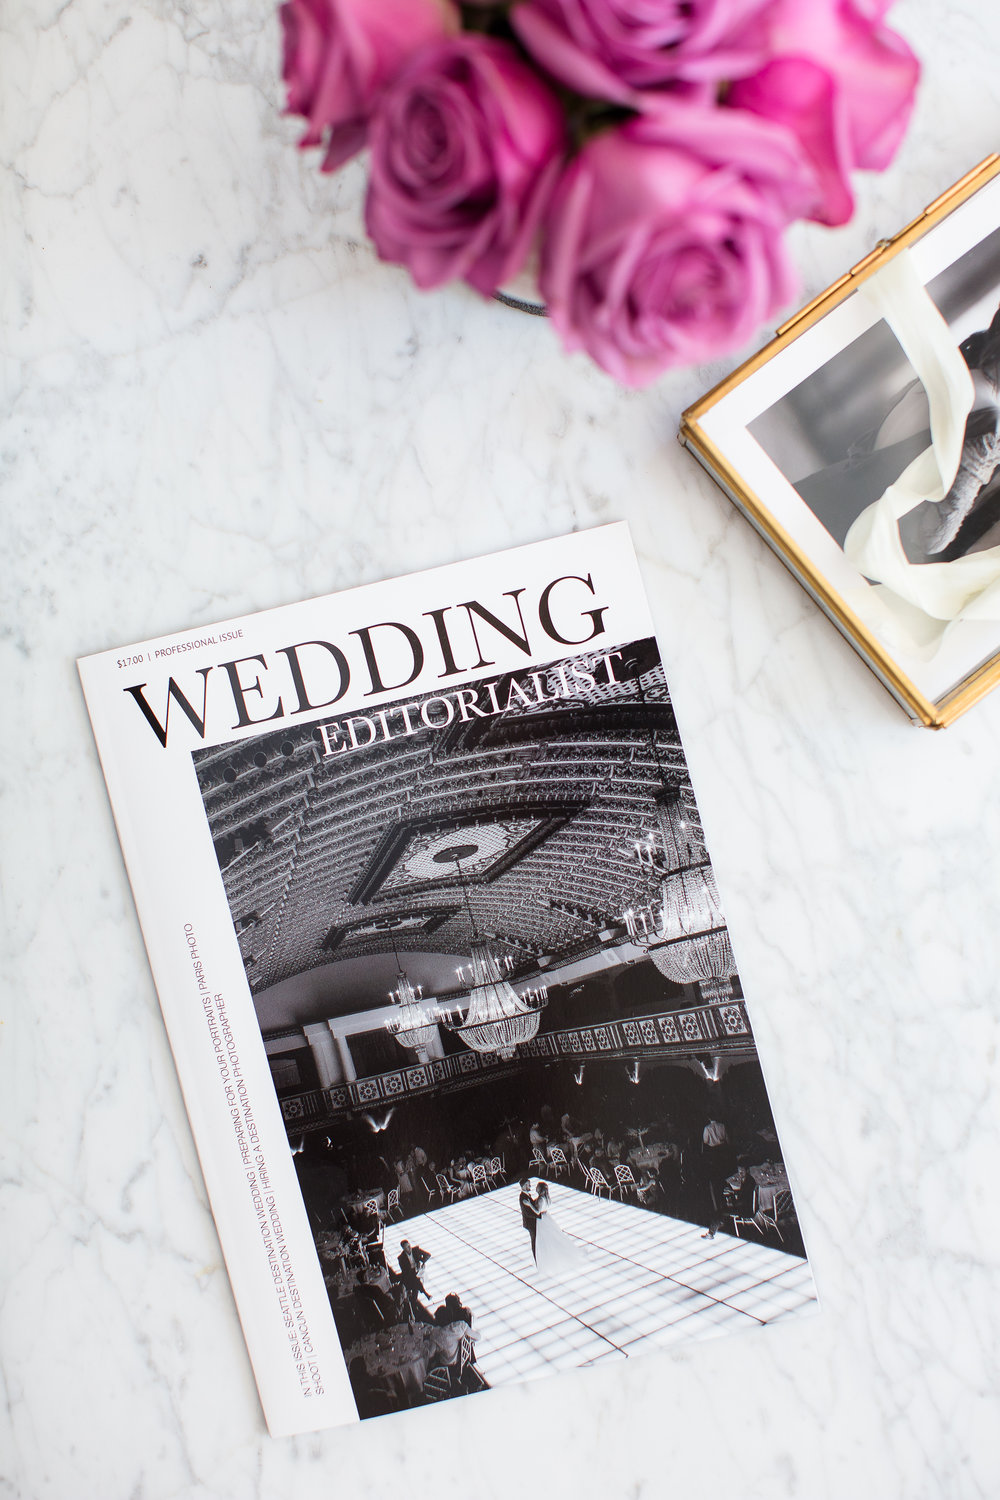 Printed Wedding Magazine.  An entire wedding magazine dedicated to you from cover to cover.  In print, and available online.  www.weddingeeditorialist.com #weddingmagazine #weddinggift #weddingfavor